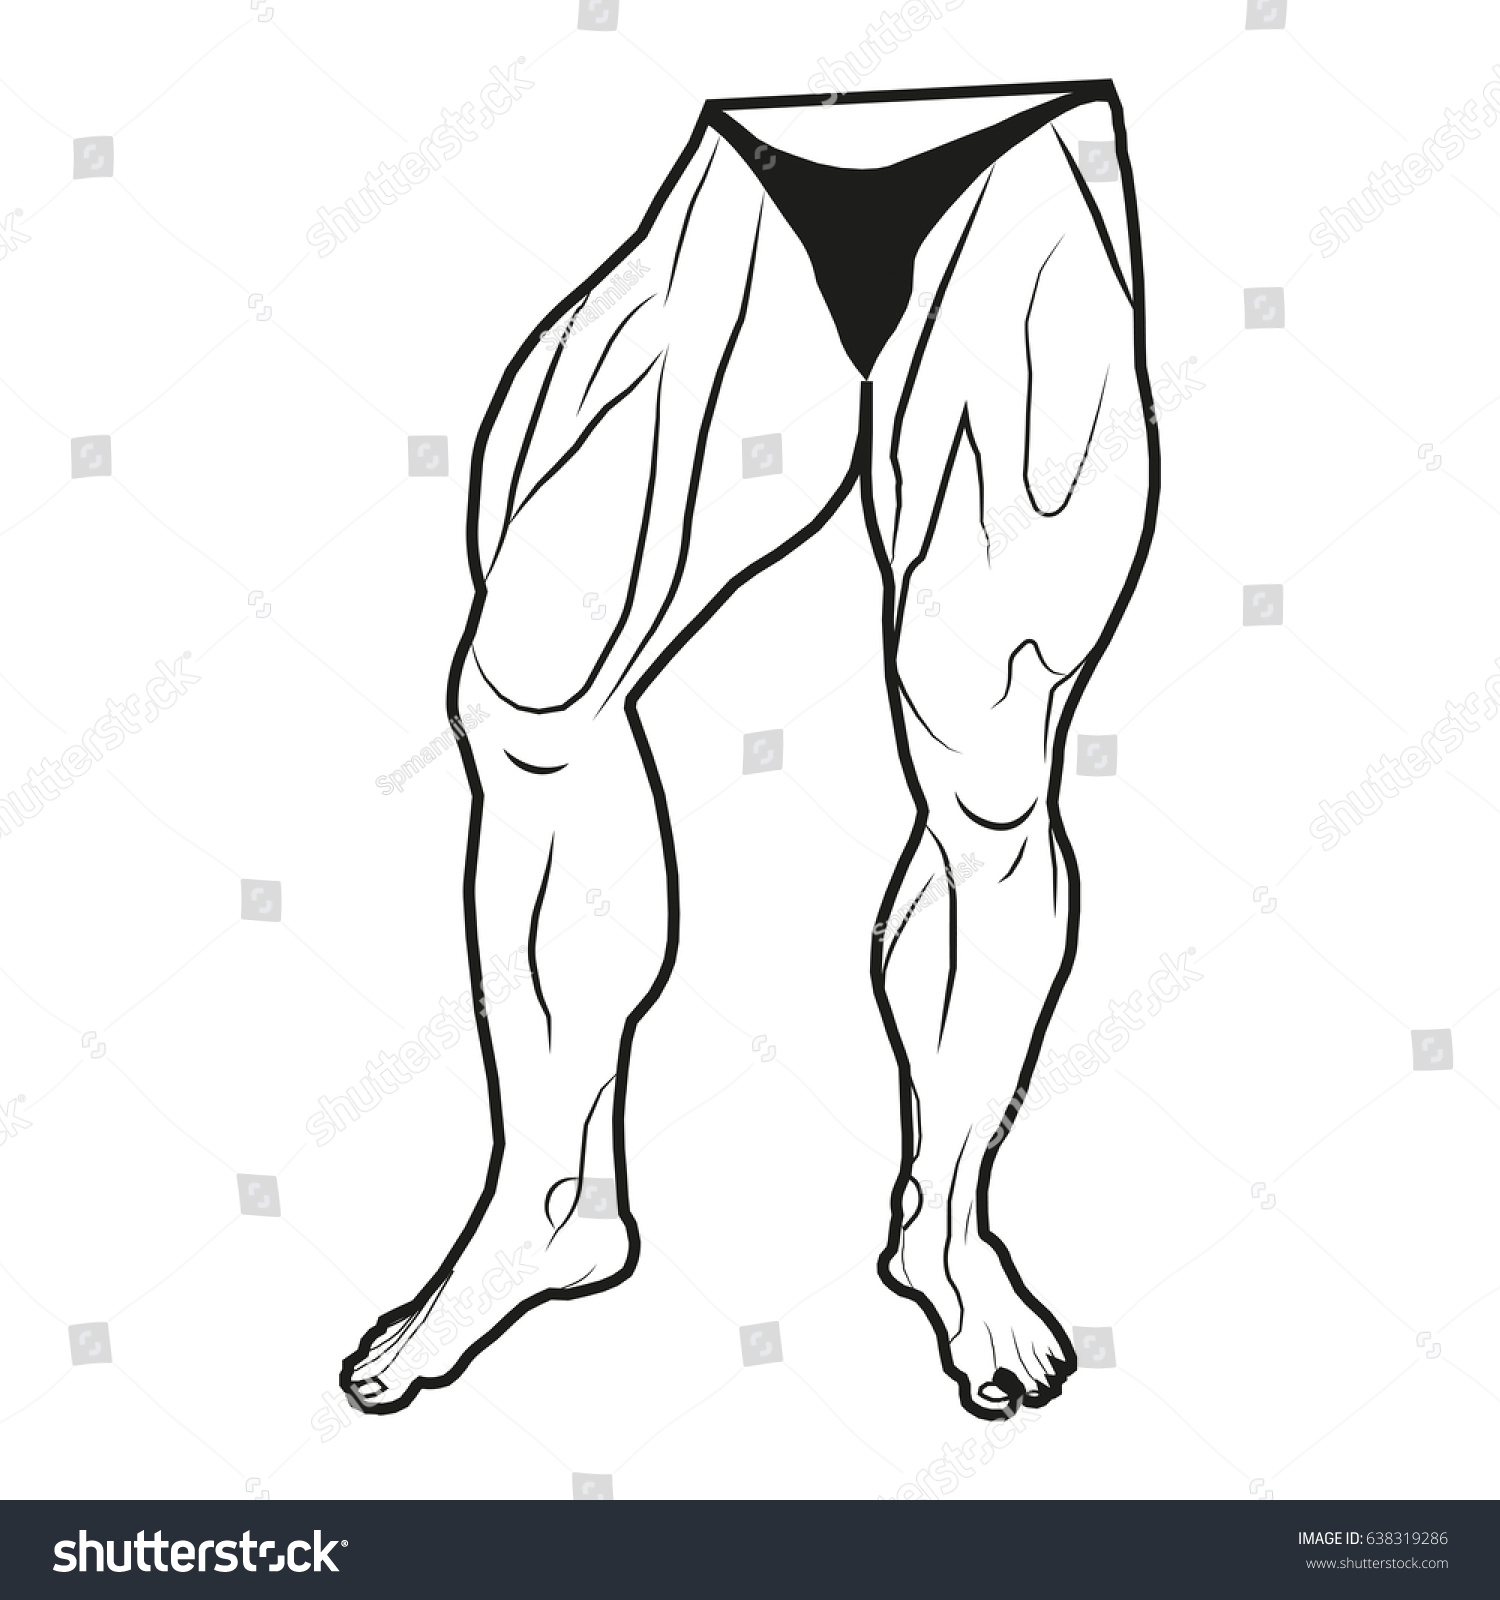 Vector Image Lower Body Man Muscles Stock Vector Royalty Free